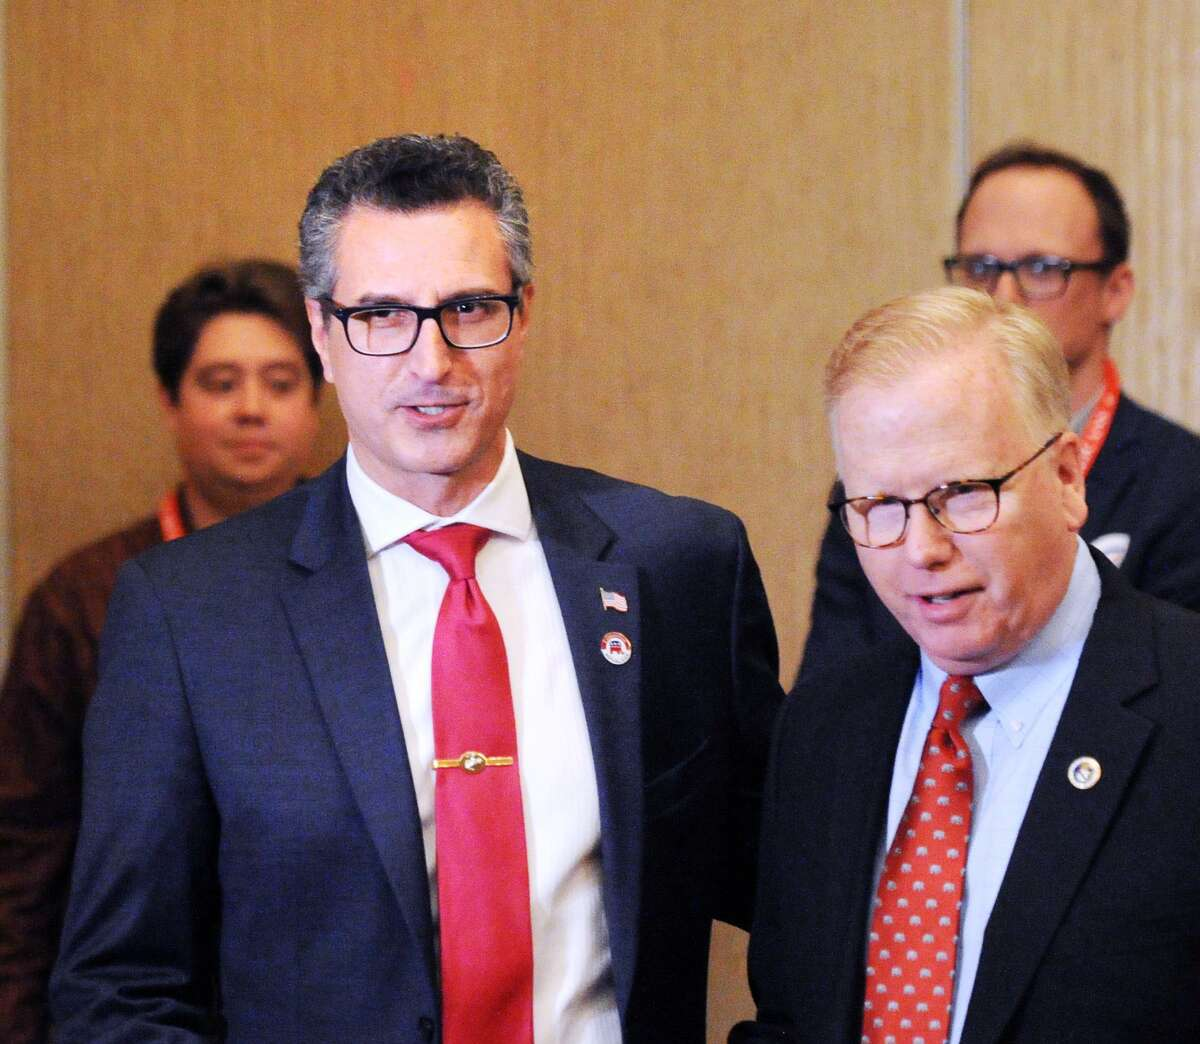 Candidate Manny Santos, left, the former Mayor of Meriden, during the nominating process for the Republican candidate for the 5th District Congressional seat at the Republican State Convention at Foxwoods Casino, Mashantucket, Conn., Friday, May 11, 2018. At right is Danbury Mayor Mark Boughton.